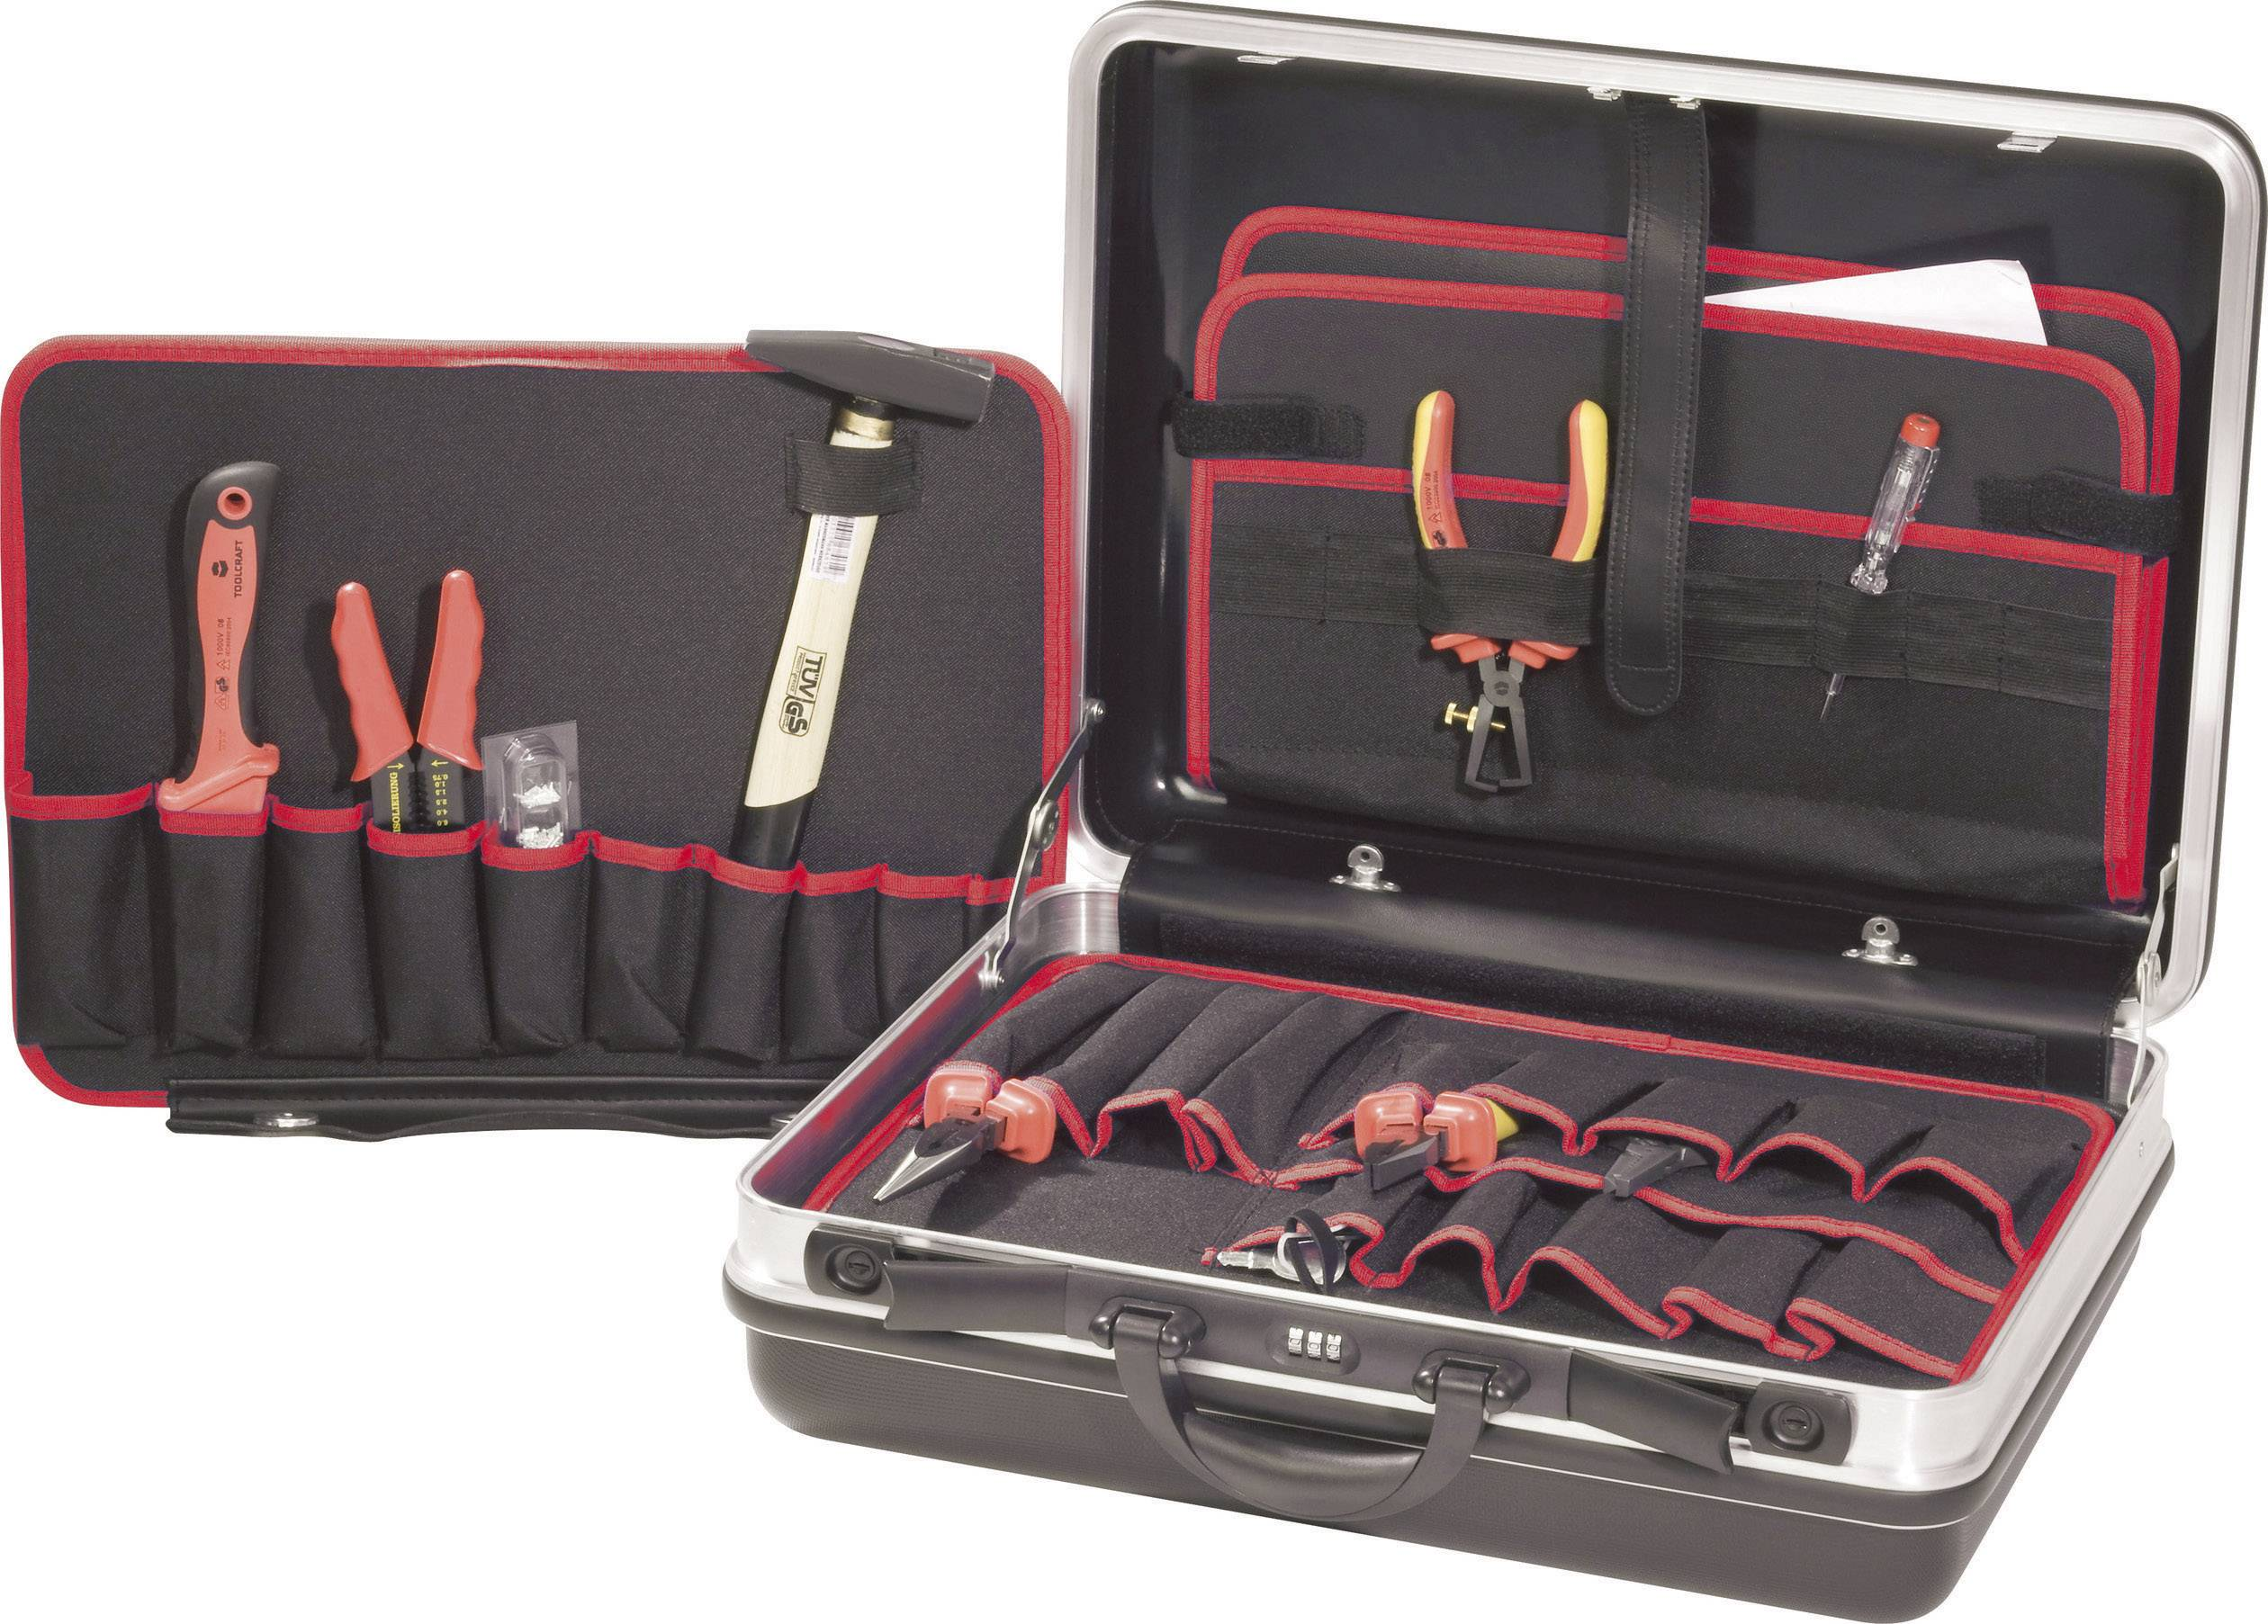 Knipex coques Valise Boîte à outils valise rigide valise valise Apprenti